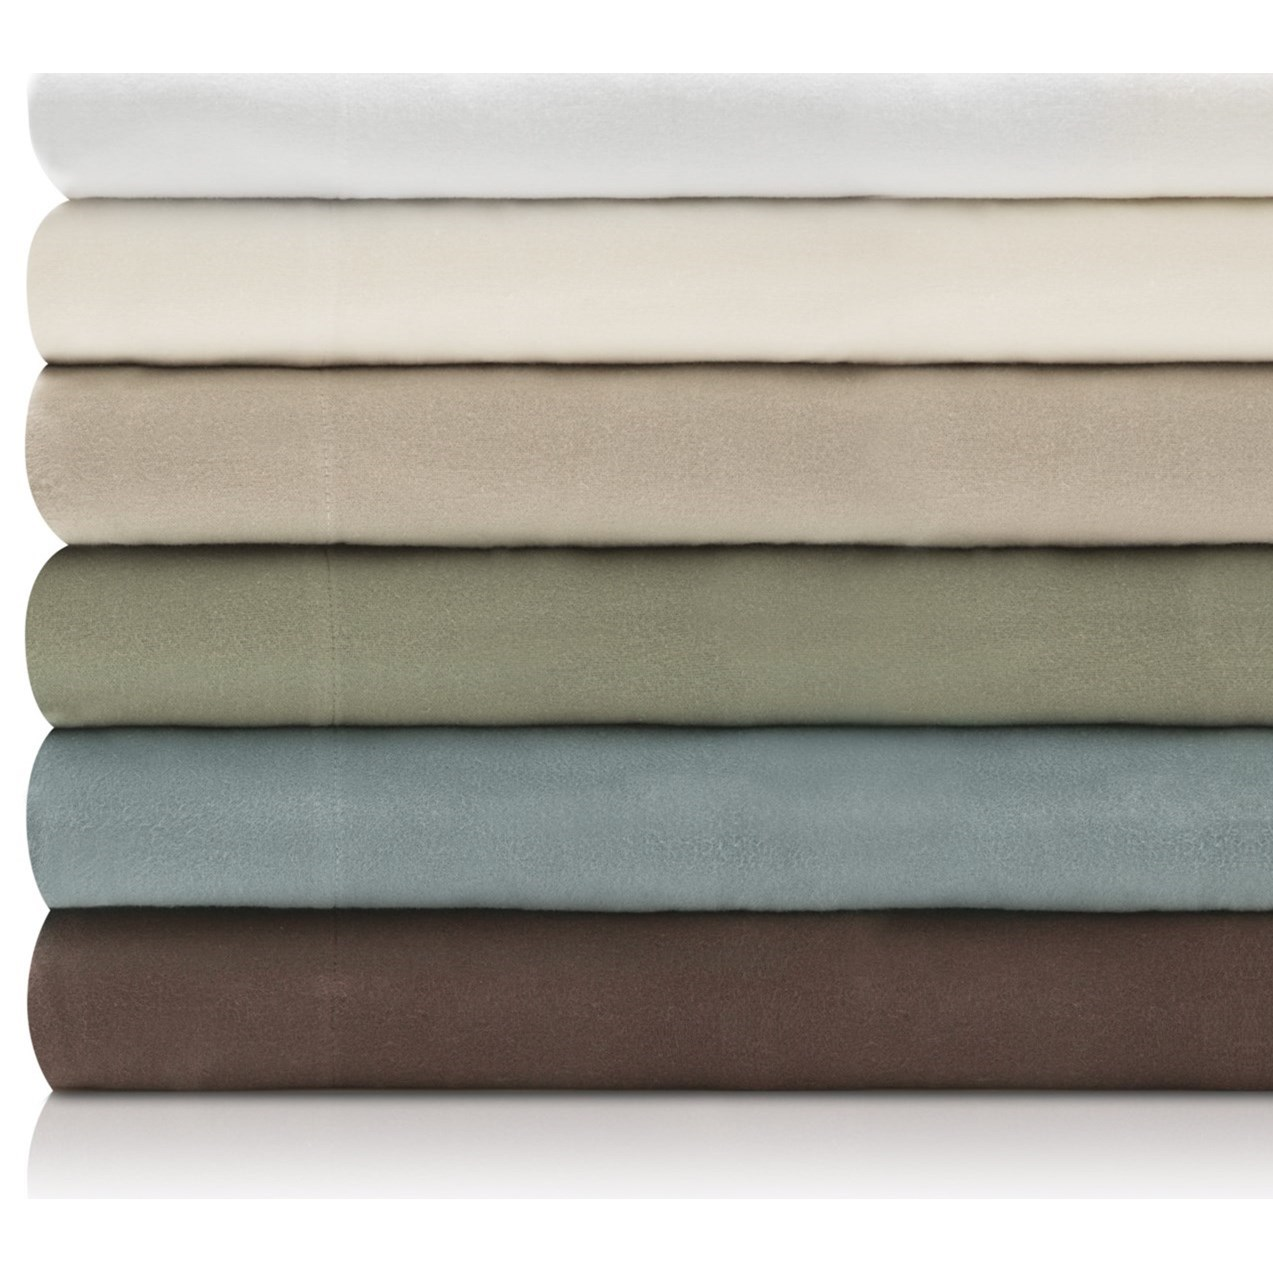 Malouf Portuguese Flannel Full XL Woven™ Portuguese Flannel Sheet Set - Item Number: WO19FXIVFS